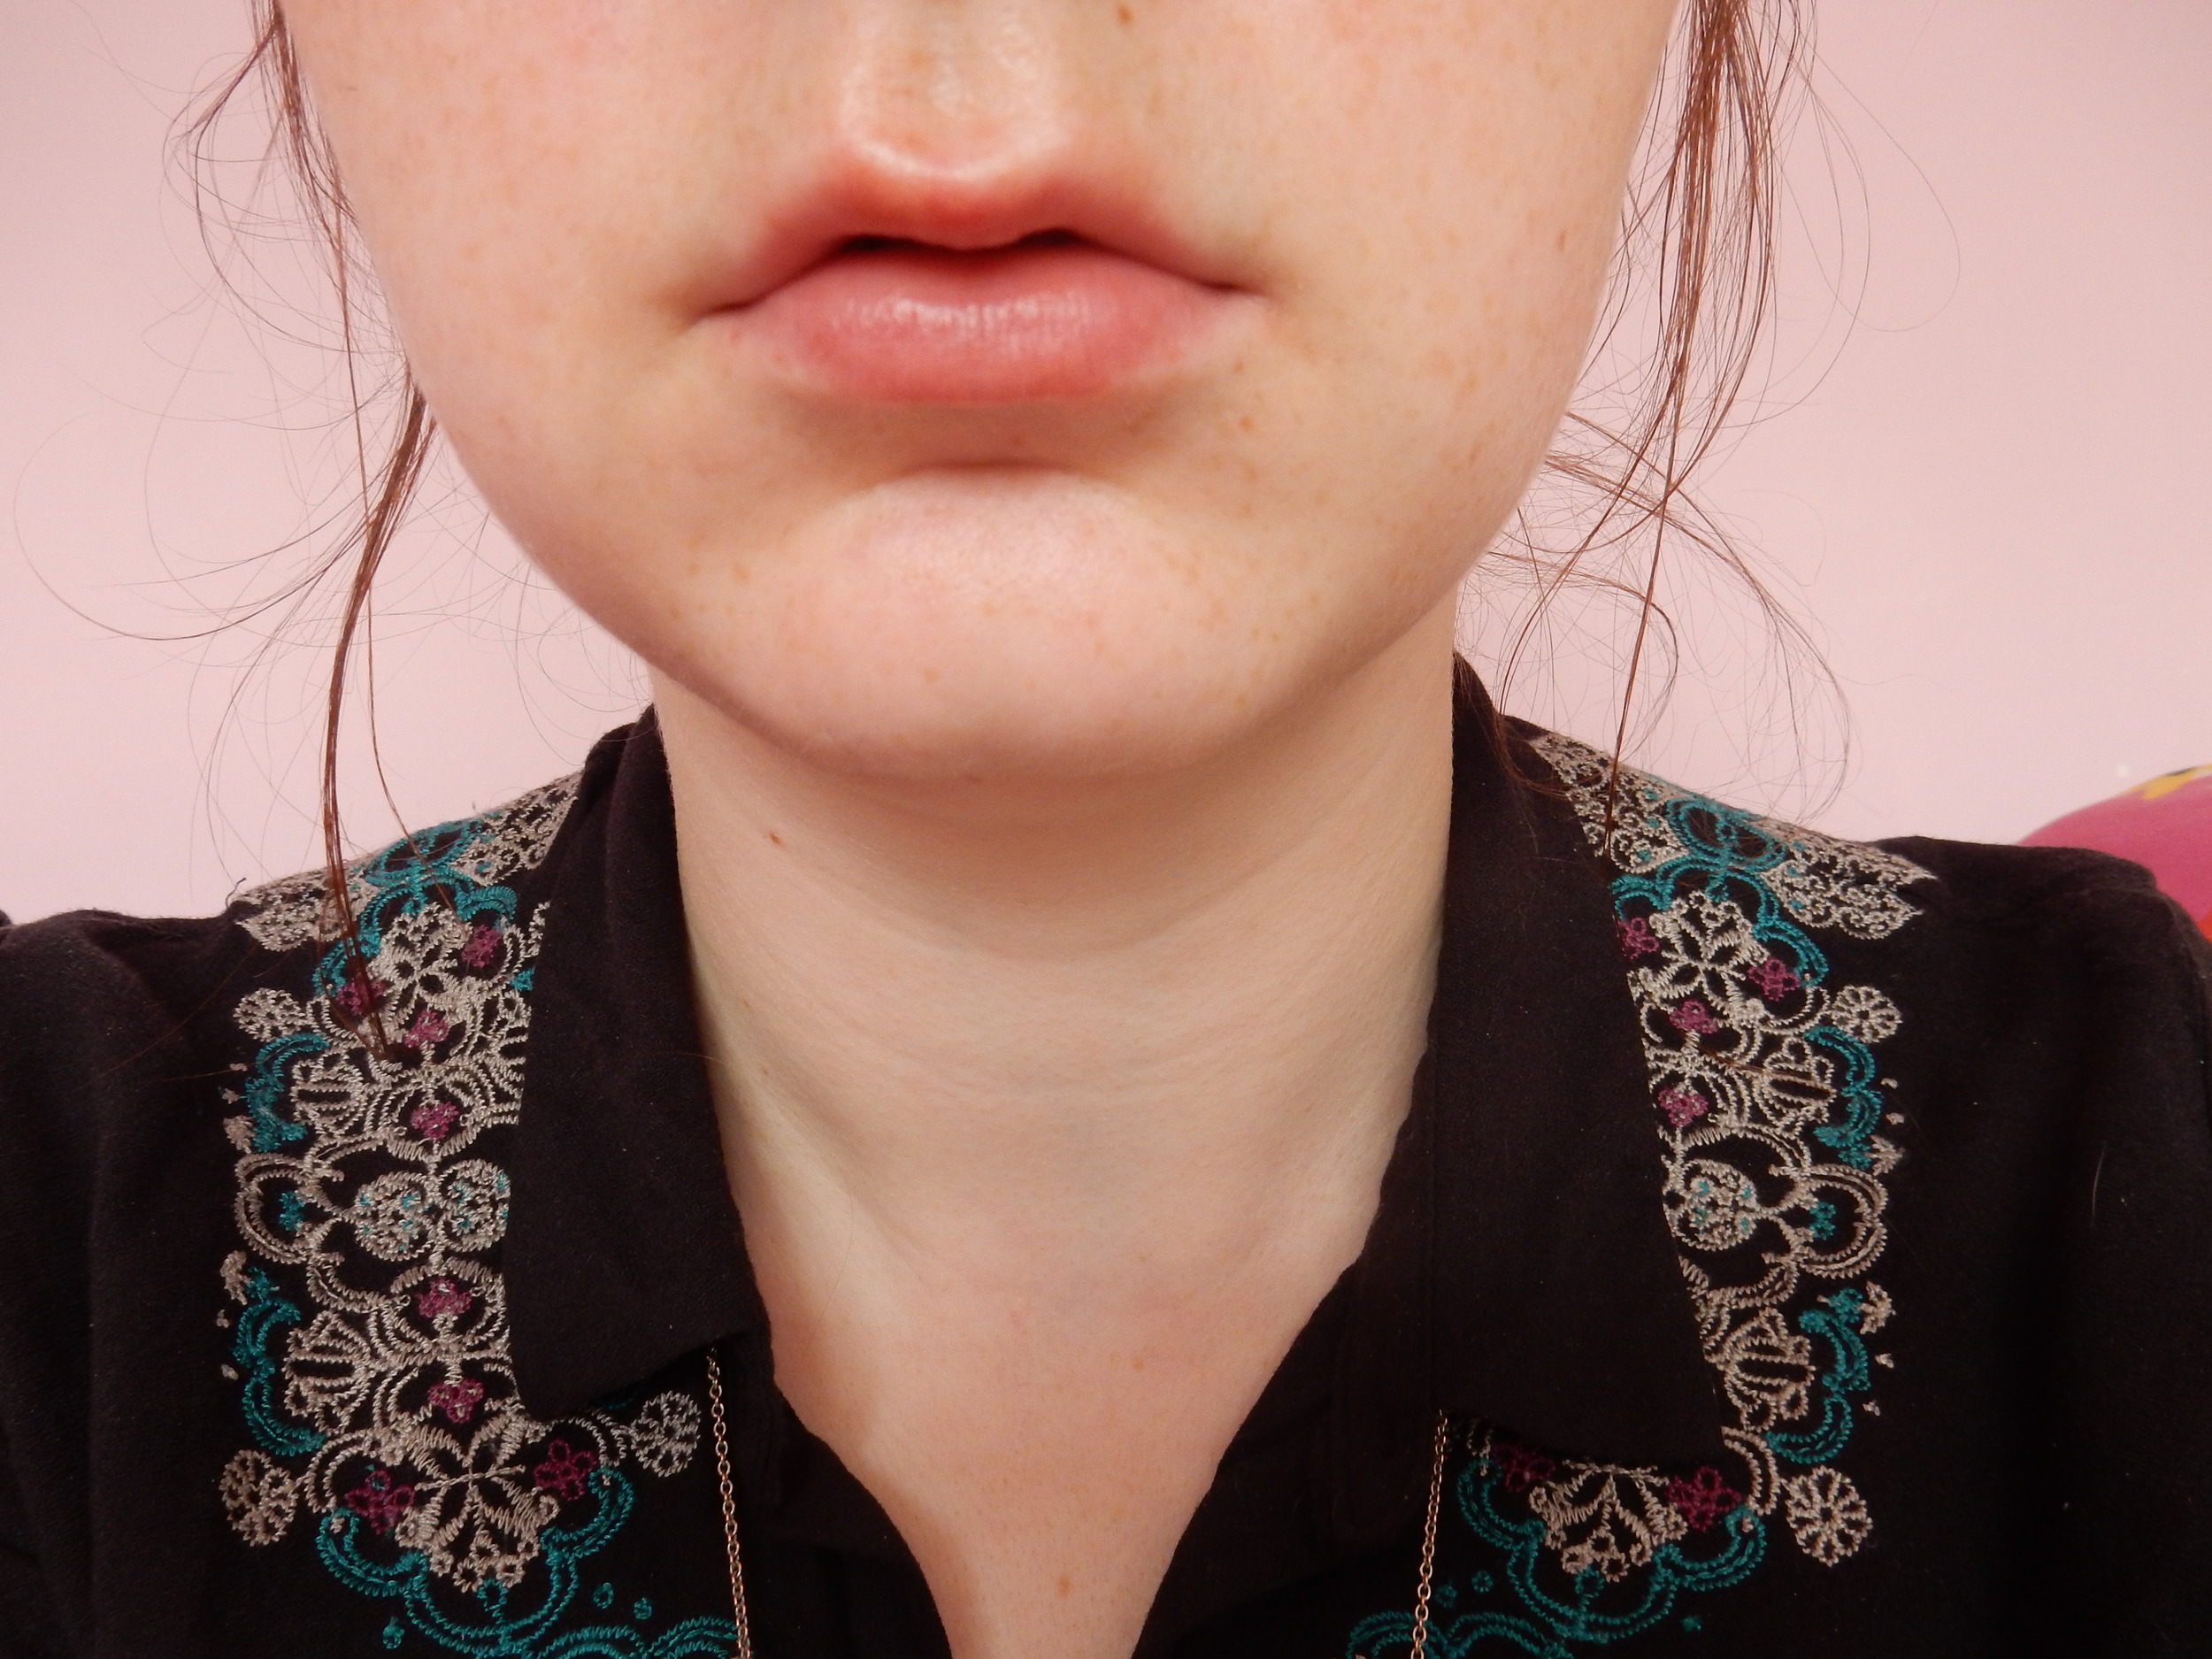 ioma lip lift review after